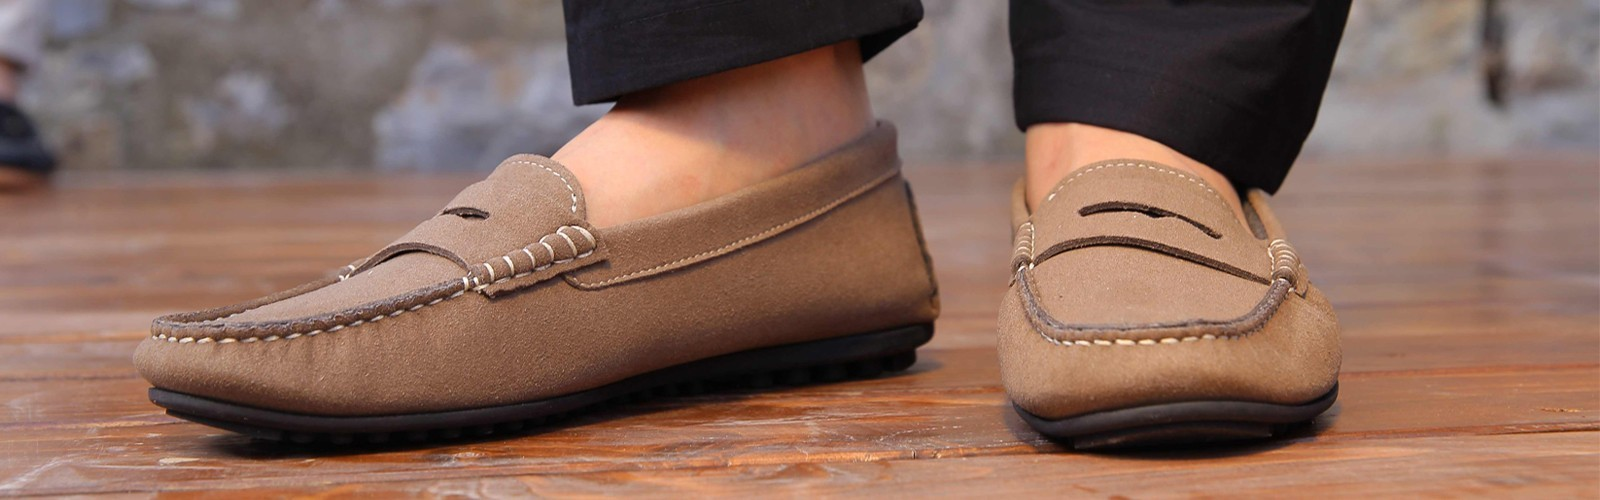 Vegan mocassin for women